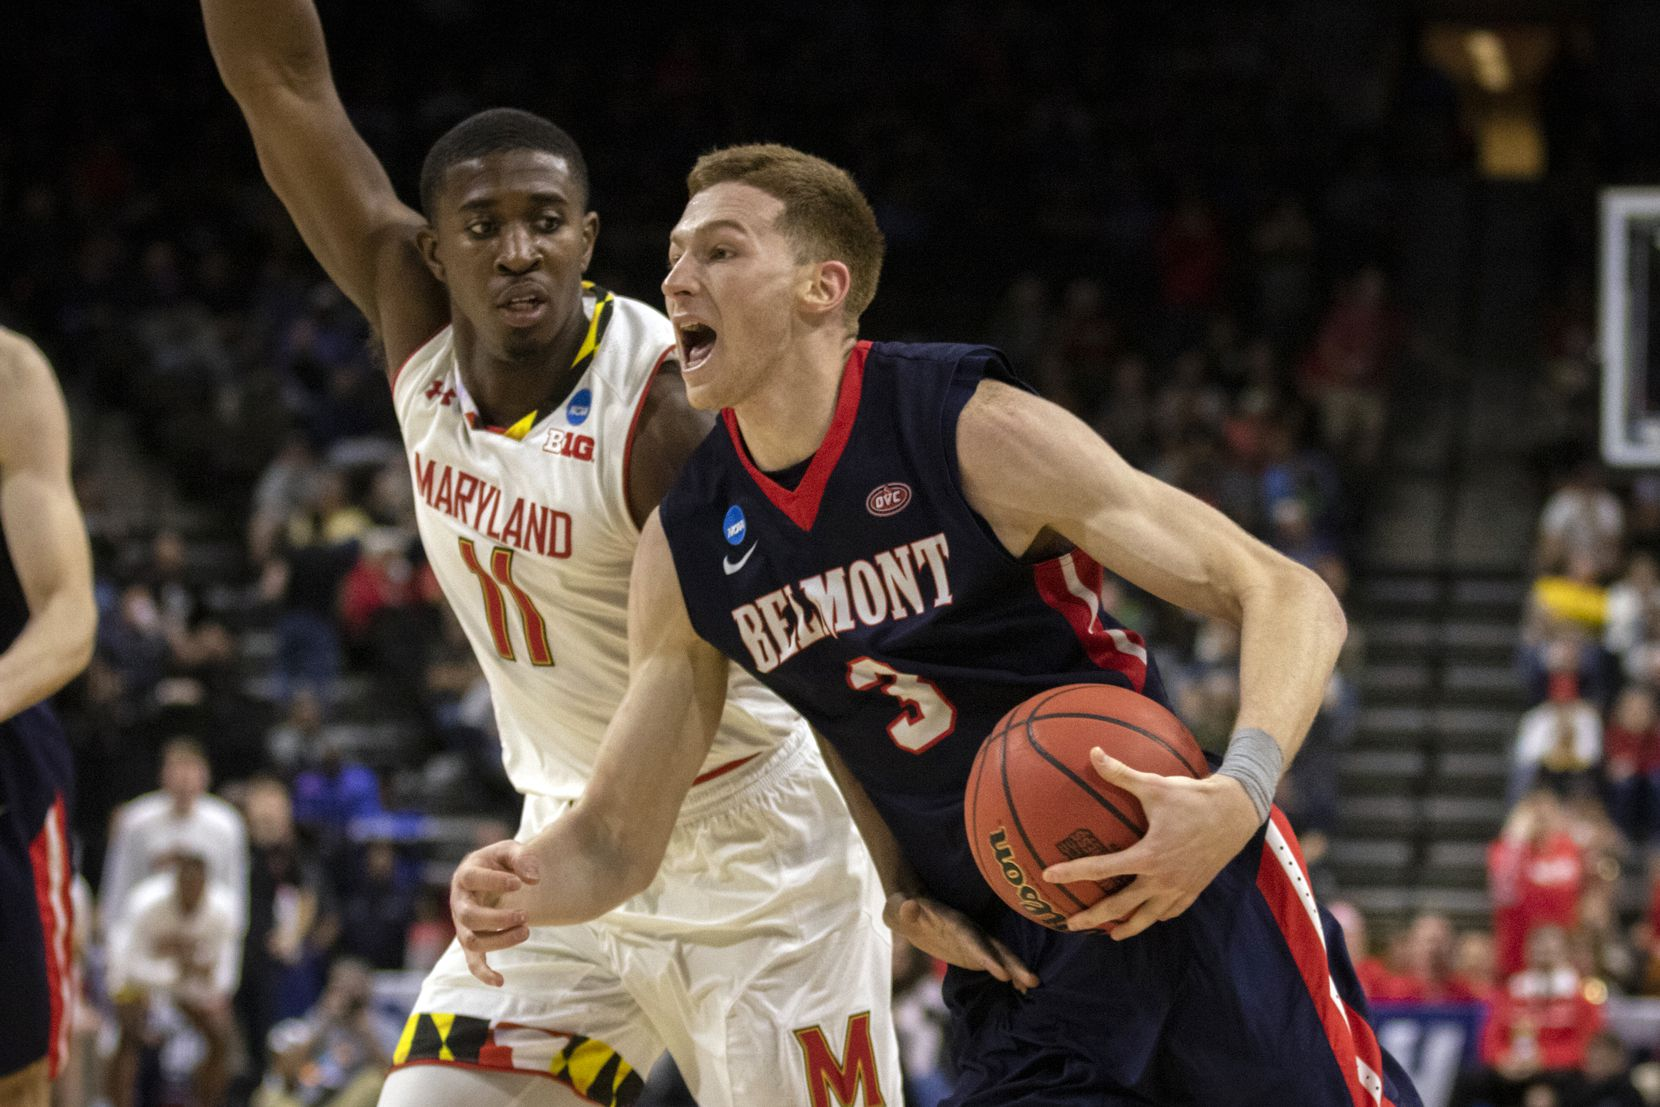 Belmont guard Dylan Windler (3) drives to the basket while being defended by Maryland guard Darryl Morsell (11) during the second half of the first round men's college basketball game in the NCAA Tournament, in Jacksonville, Fla. Thursday, March 21, 2019. (AP Photo/Stephen B. Morton)